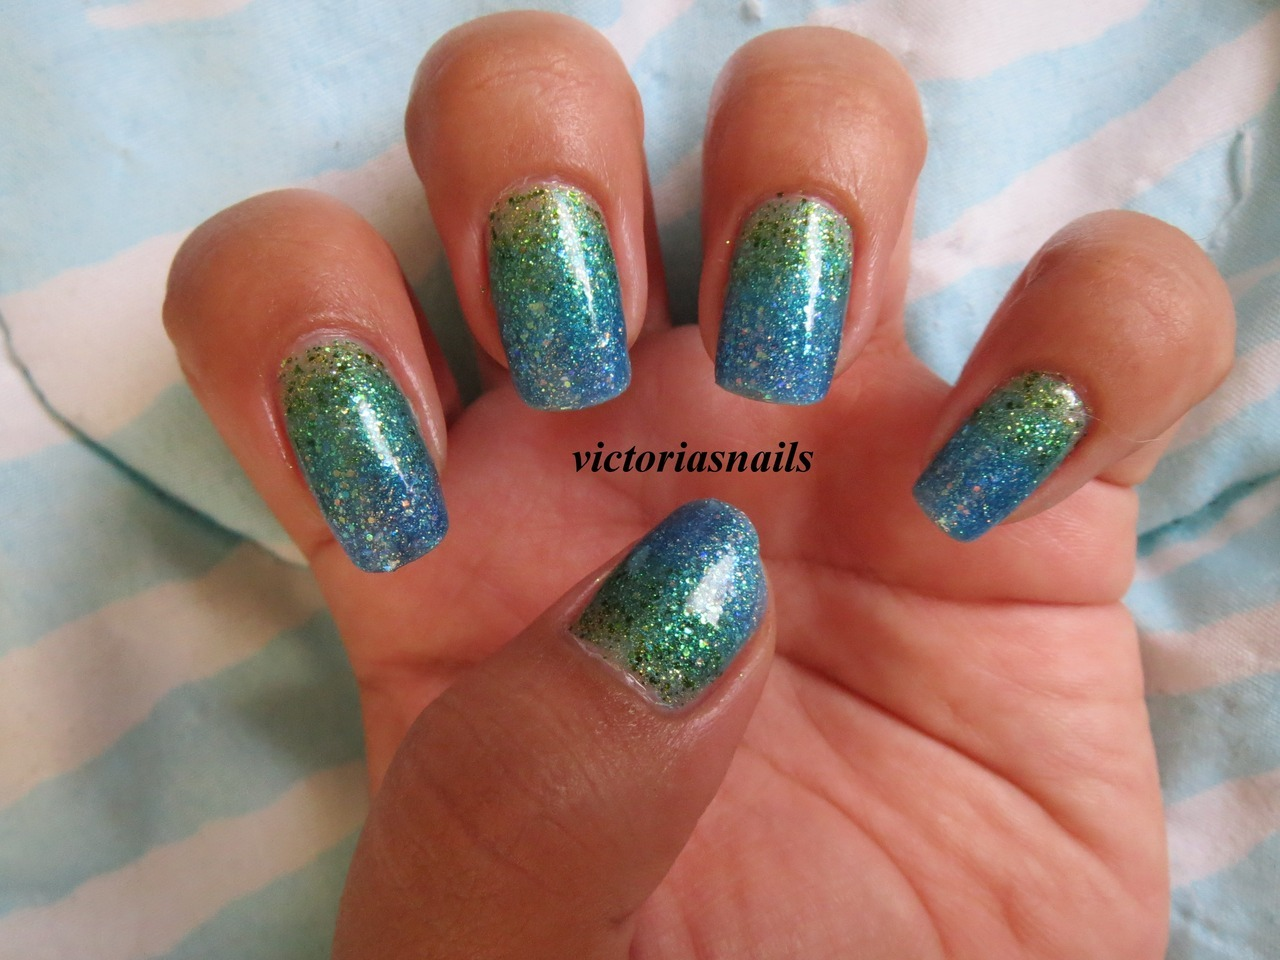 Glitter gradient nails! I could not for the life of me capture the colors & true beauty of this with my camera, but I promise that it looks 10 times better in person! I legit cannot stop staring at my nails. Lol. As soon as I saw PackAPunchPolish's tutorial for these, I knew I had to try them, especially since I happened to have all the same polishes she used in the tutorial! You can watch her tutorial HERE! Colors used:  Sinful Colors - Love Nails, Call You Later, Hottie, Nail Junkie